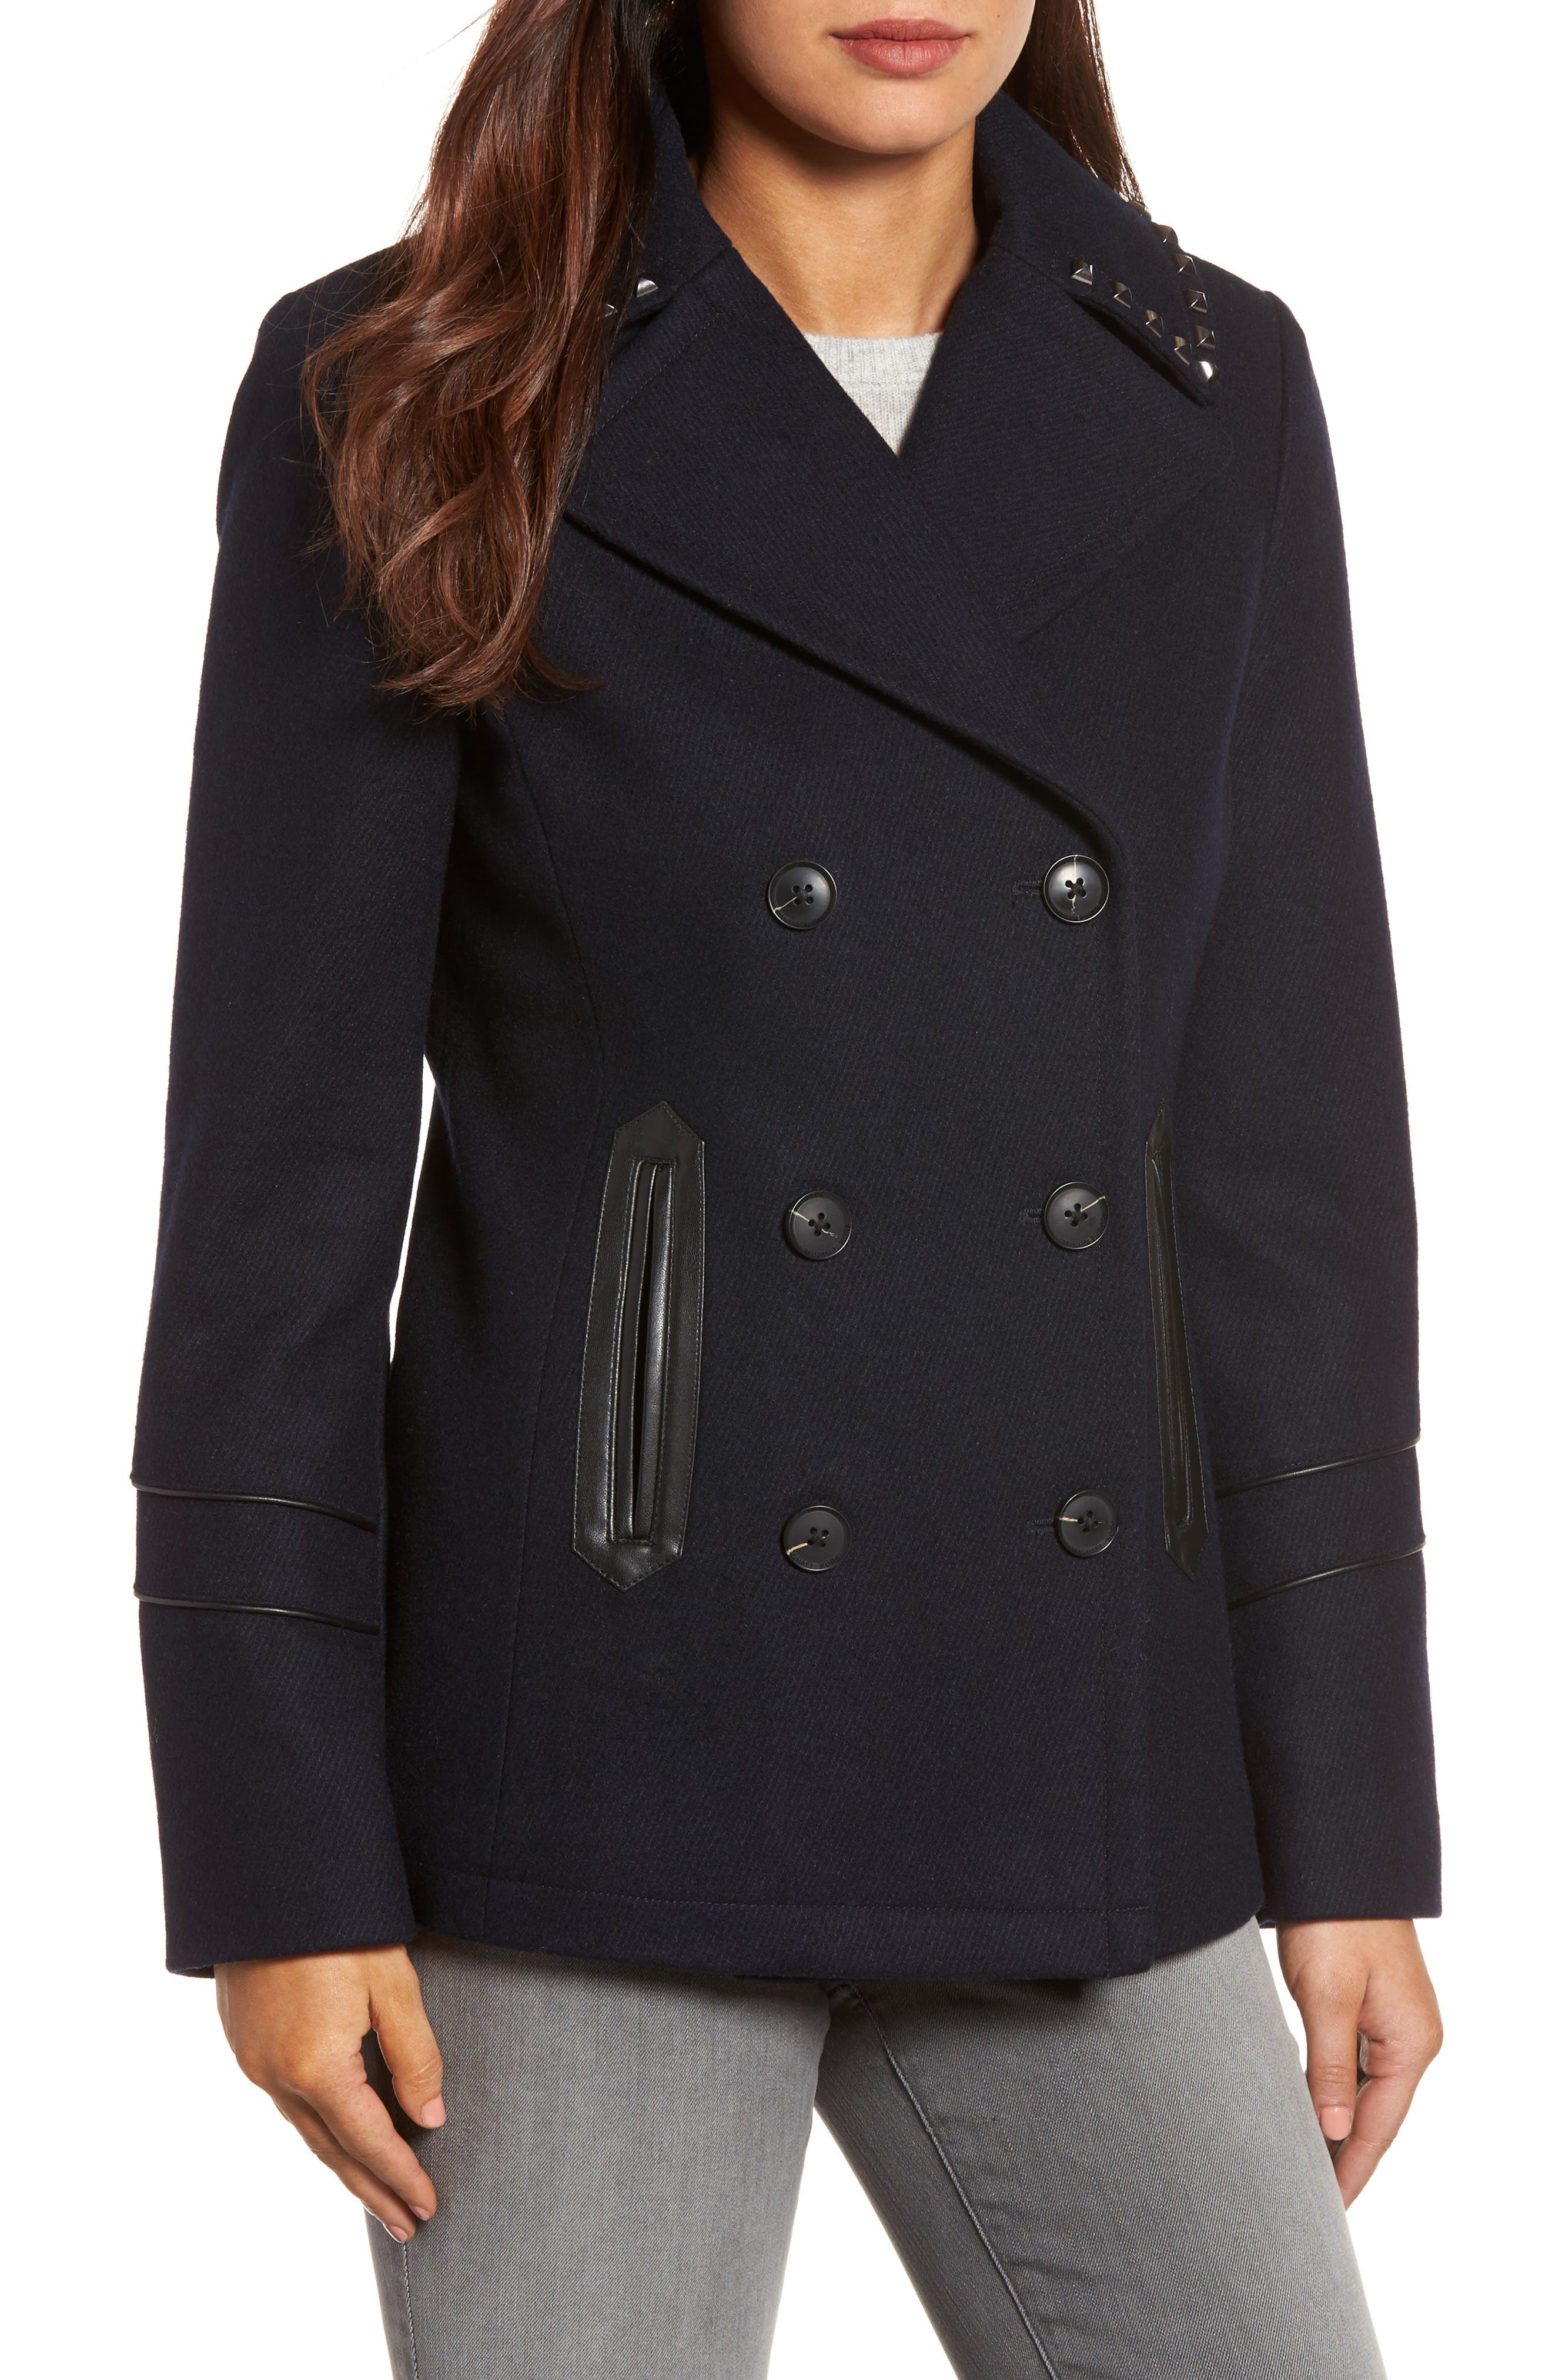 MICHAEL Michael Kors Faux Leather Trim Wool Blend Peacoat